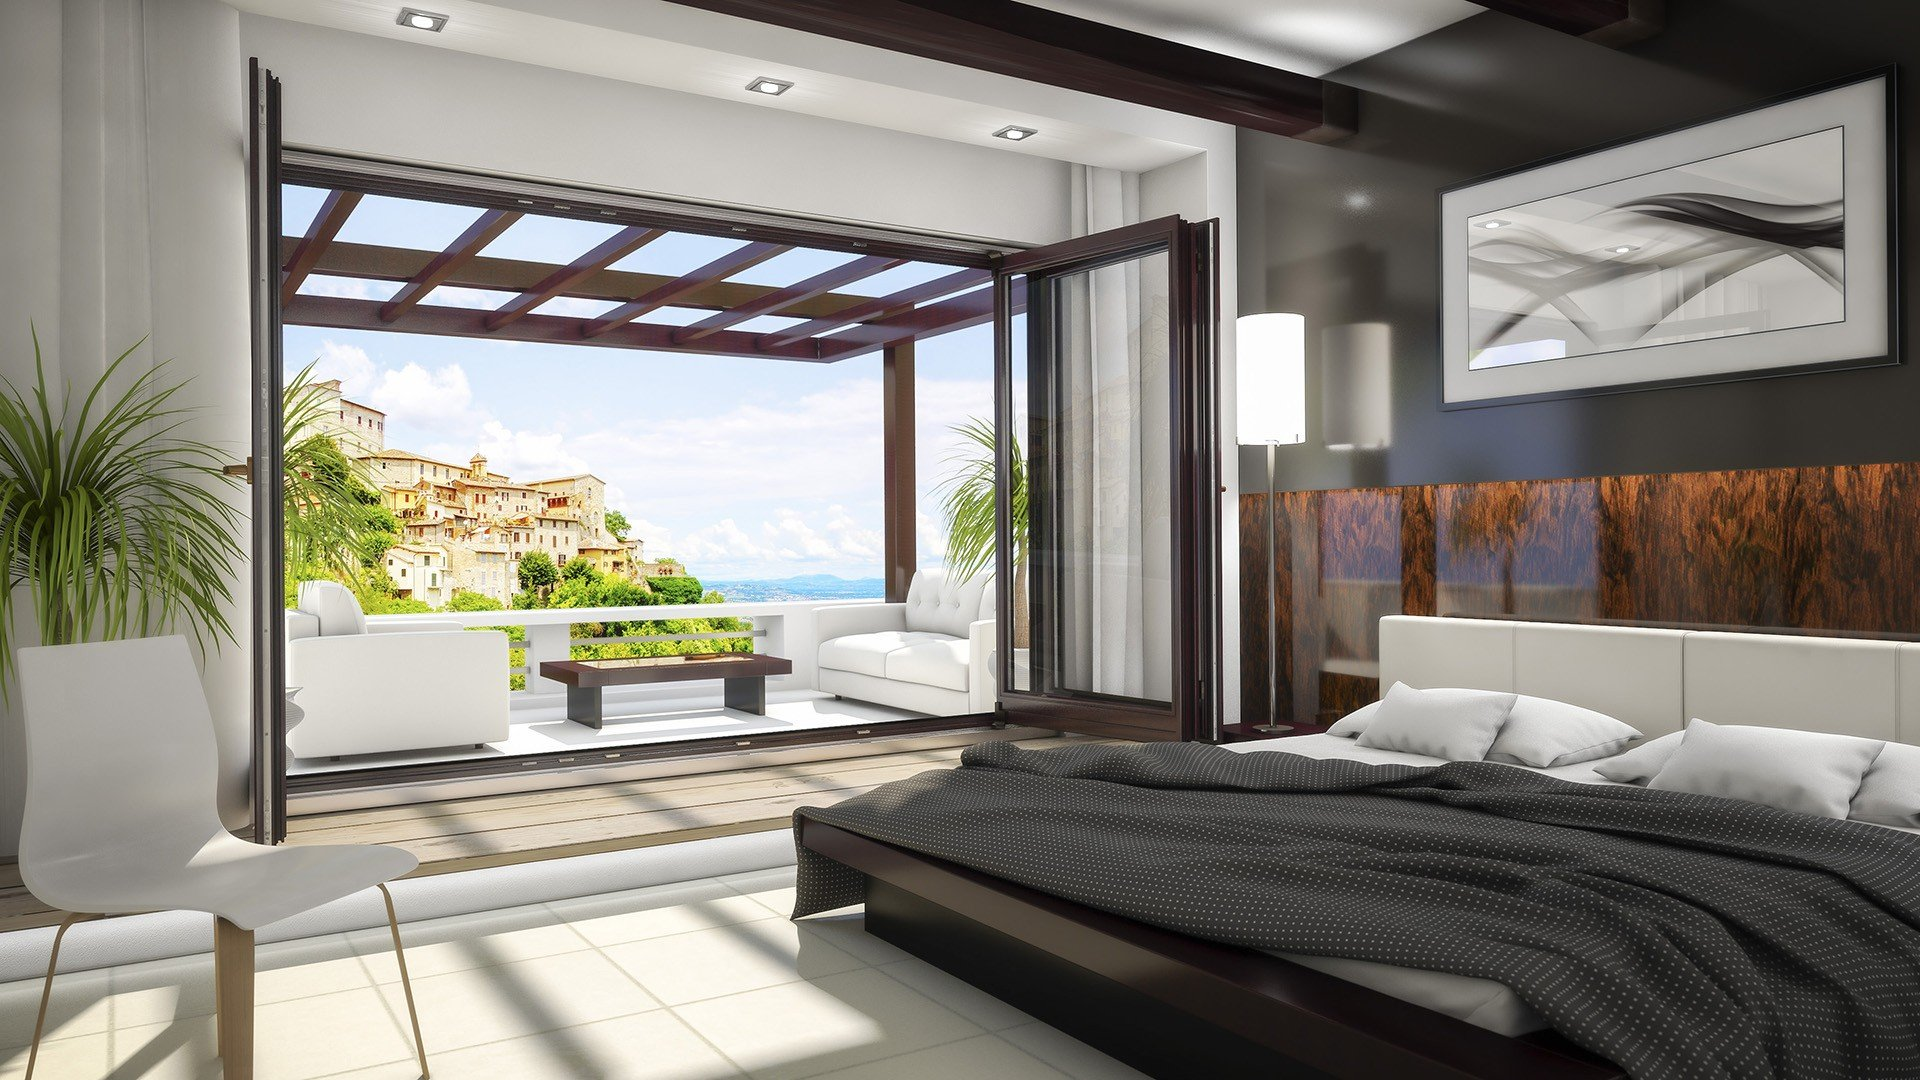 Terrace systems » Folding doors » SOFTLINE 68